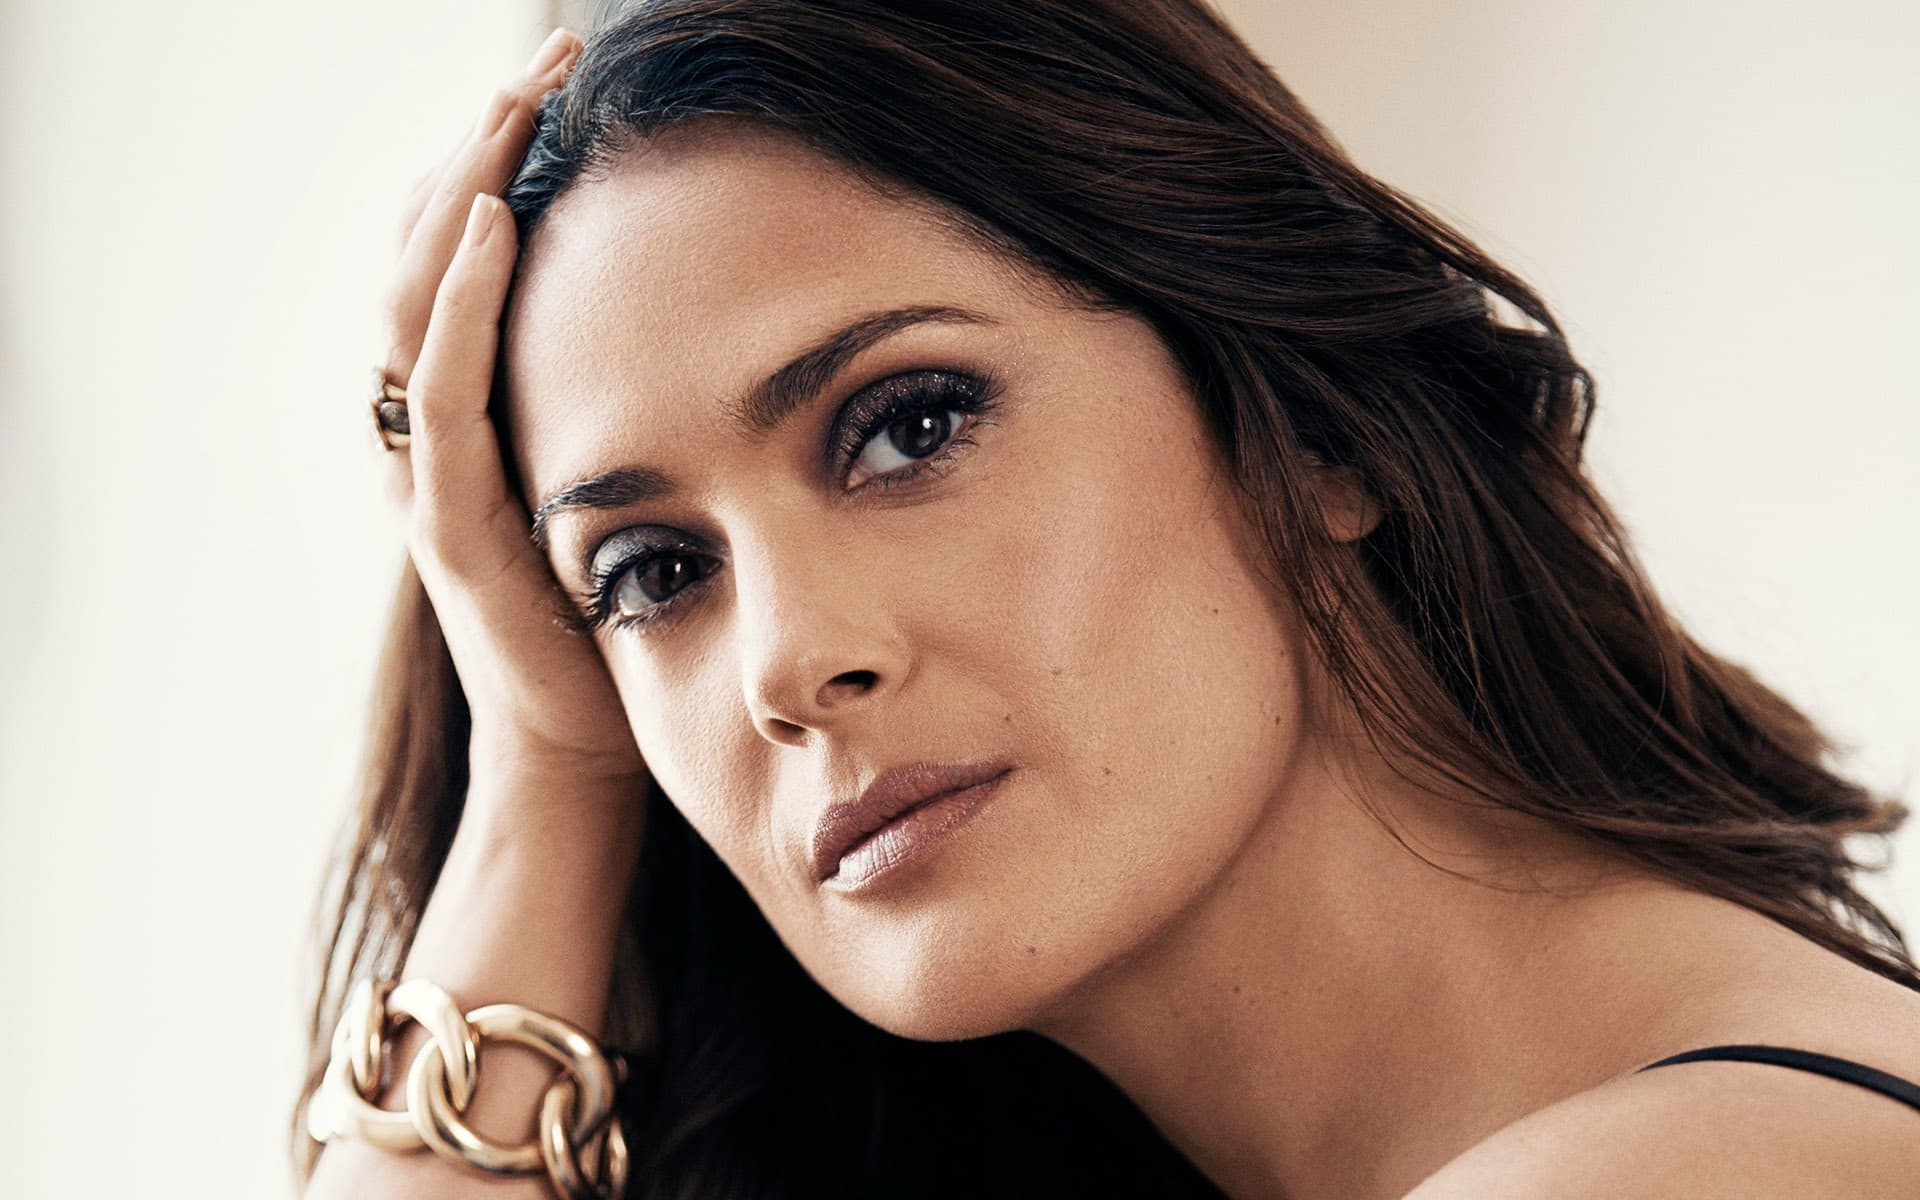 Salma hayek wallpapers hd pictures photos images Hd video hd video hd video hd video